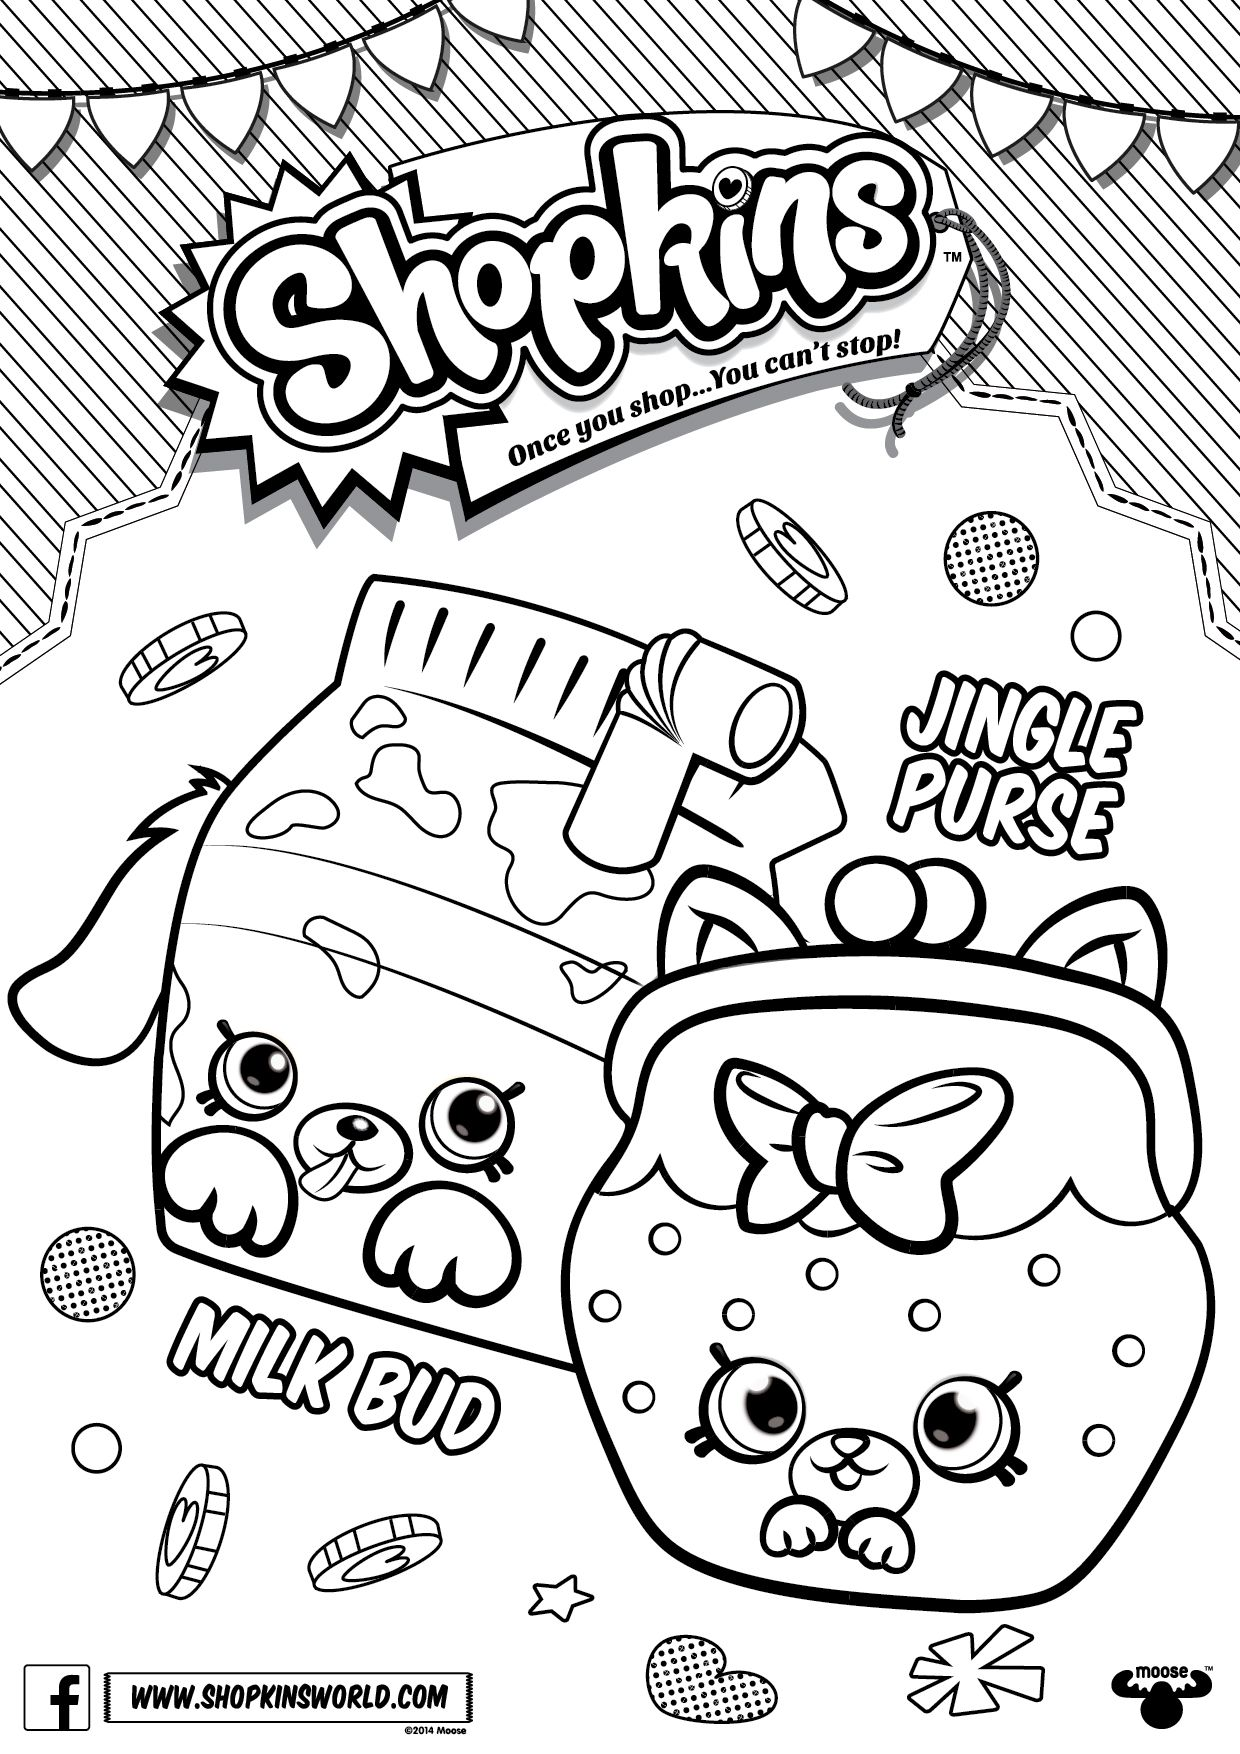 Shopkins coloring pages to print out - Shopkins Printable